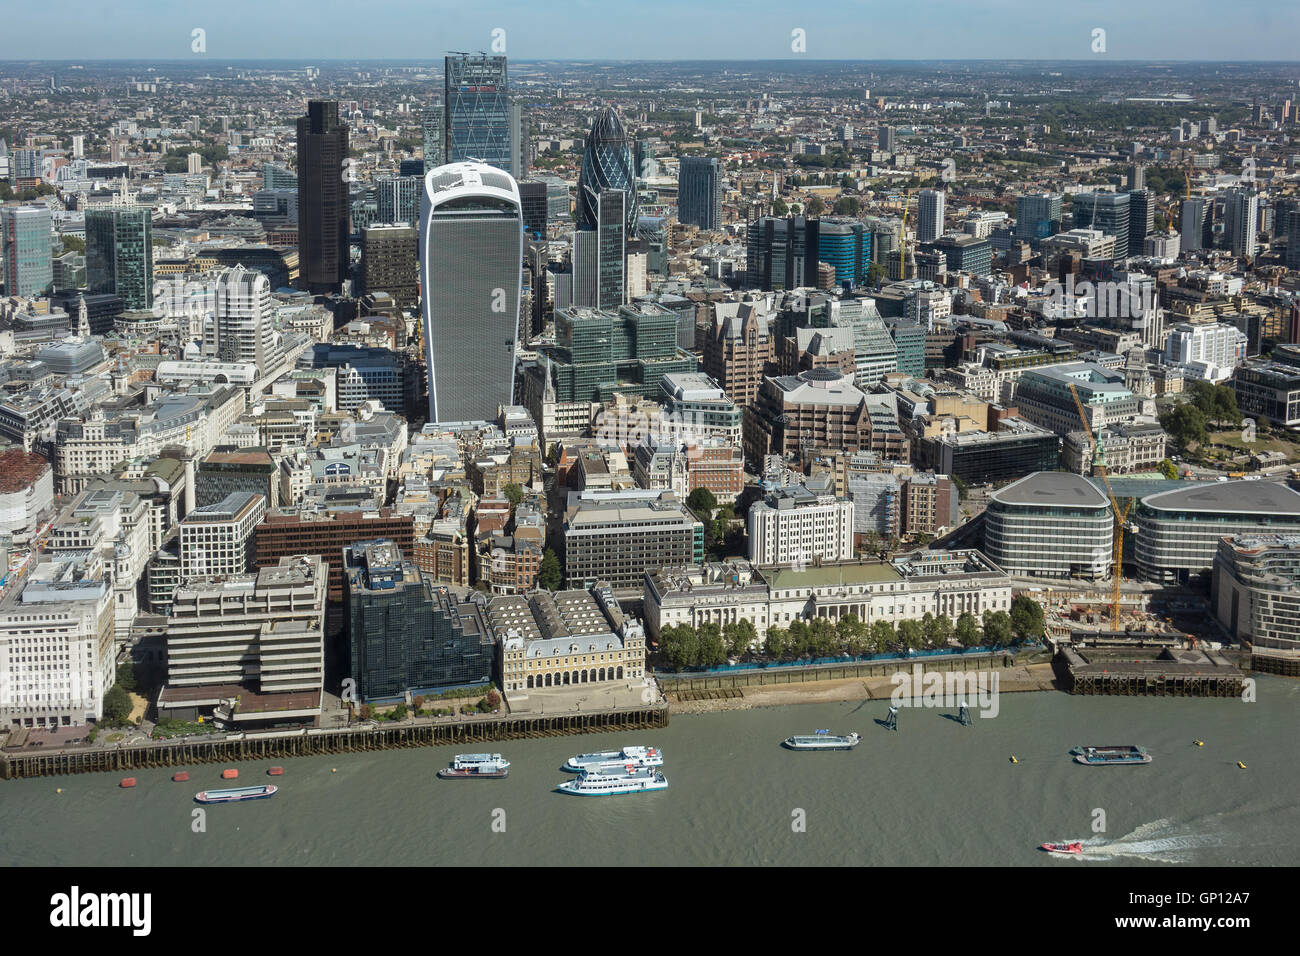 England, London, City of London & River Thames, aerial - Stock Image